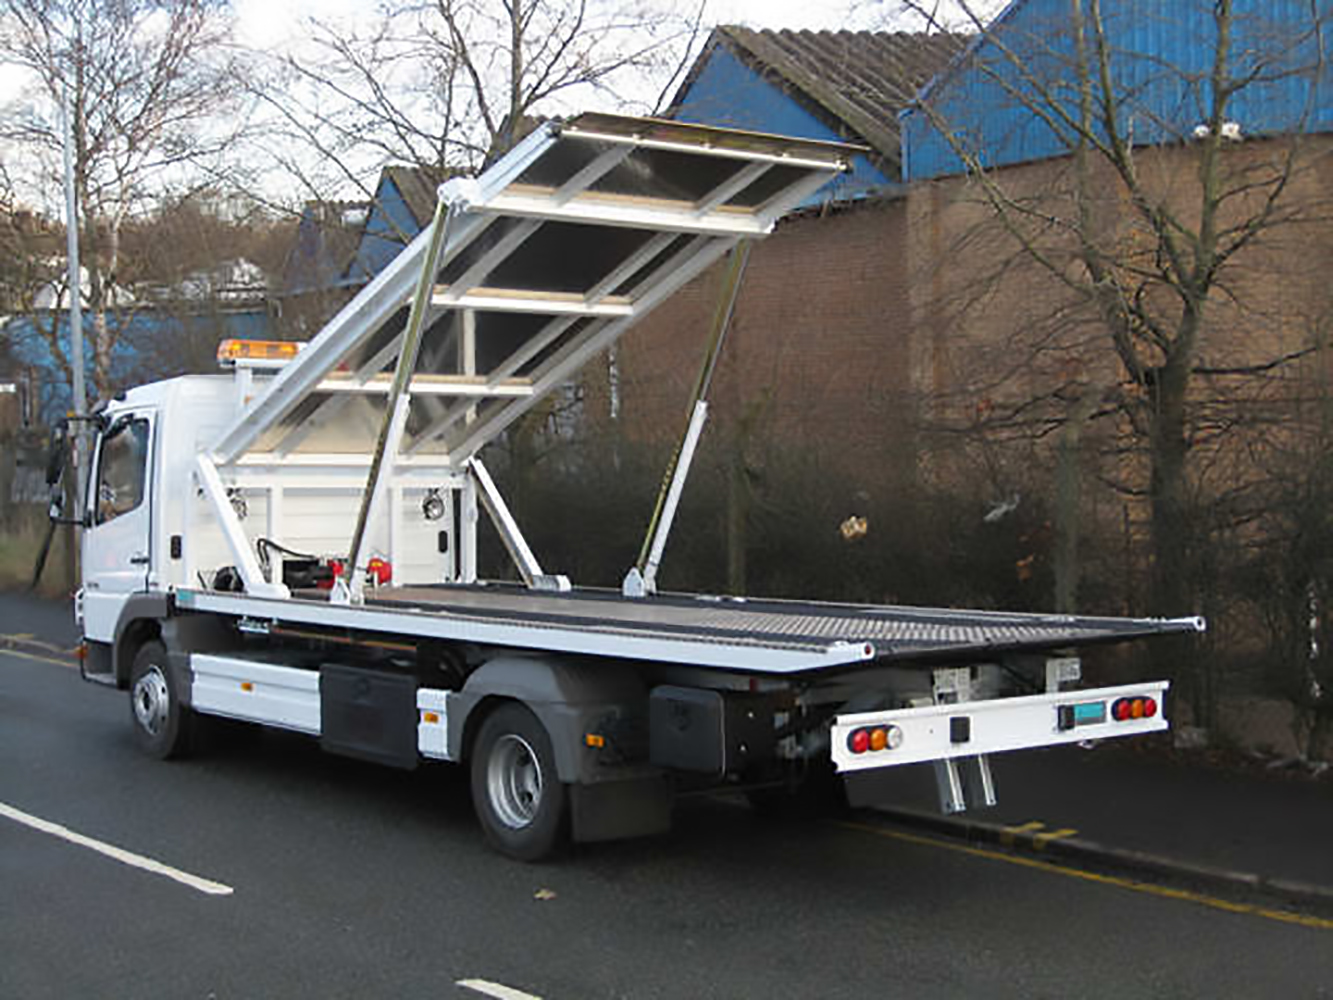 Recovery Truck - Recovery Vehicle - Slideback Multi Car Carrier